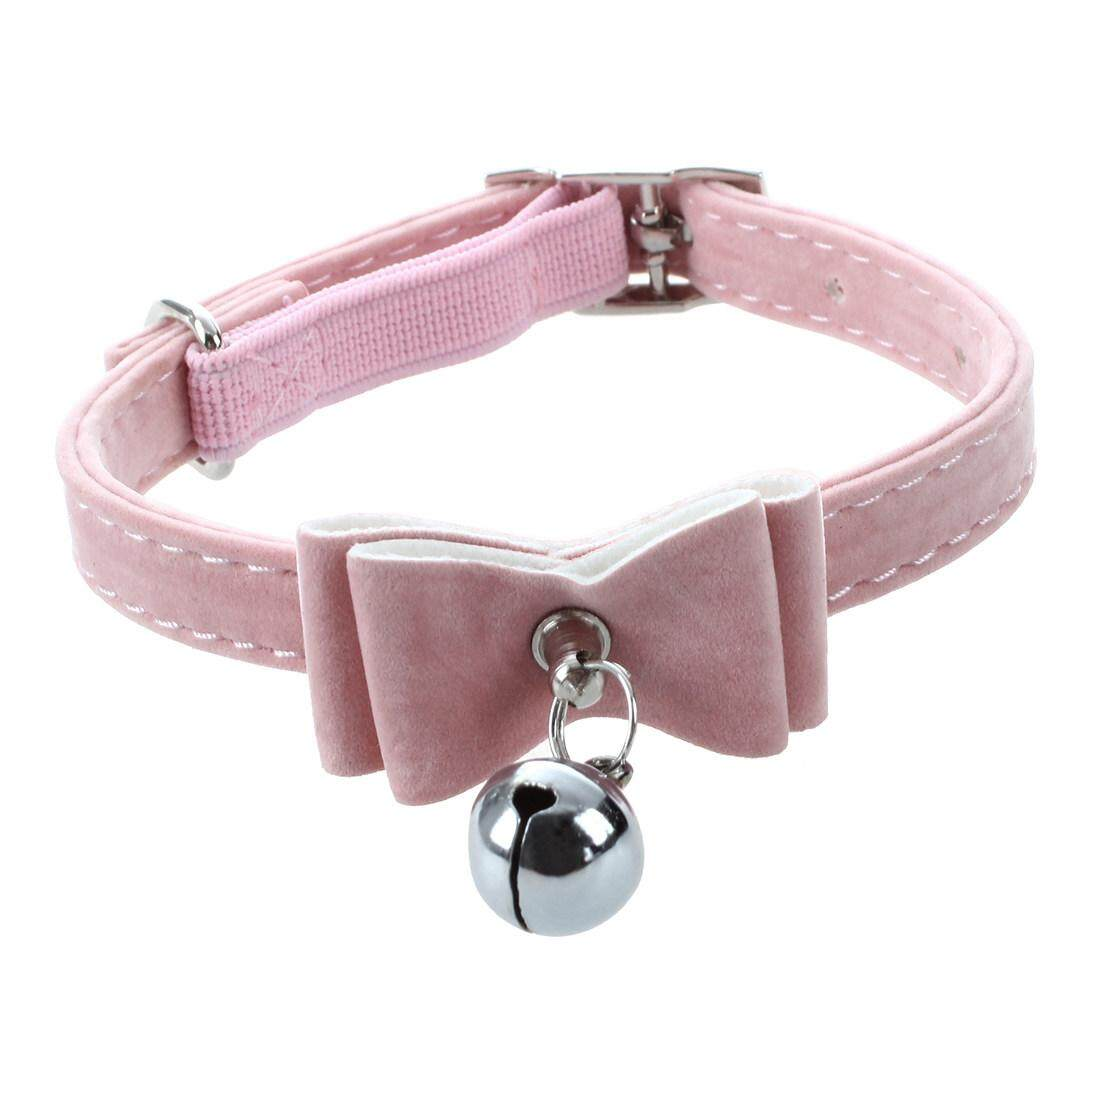 Training Leash for Dogs for sale - Leashes & Collars for Dogs online